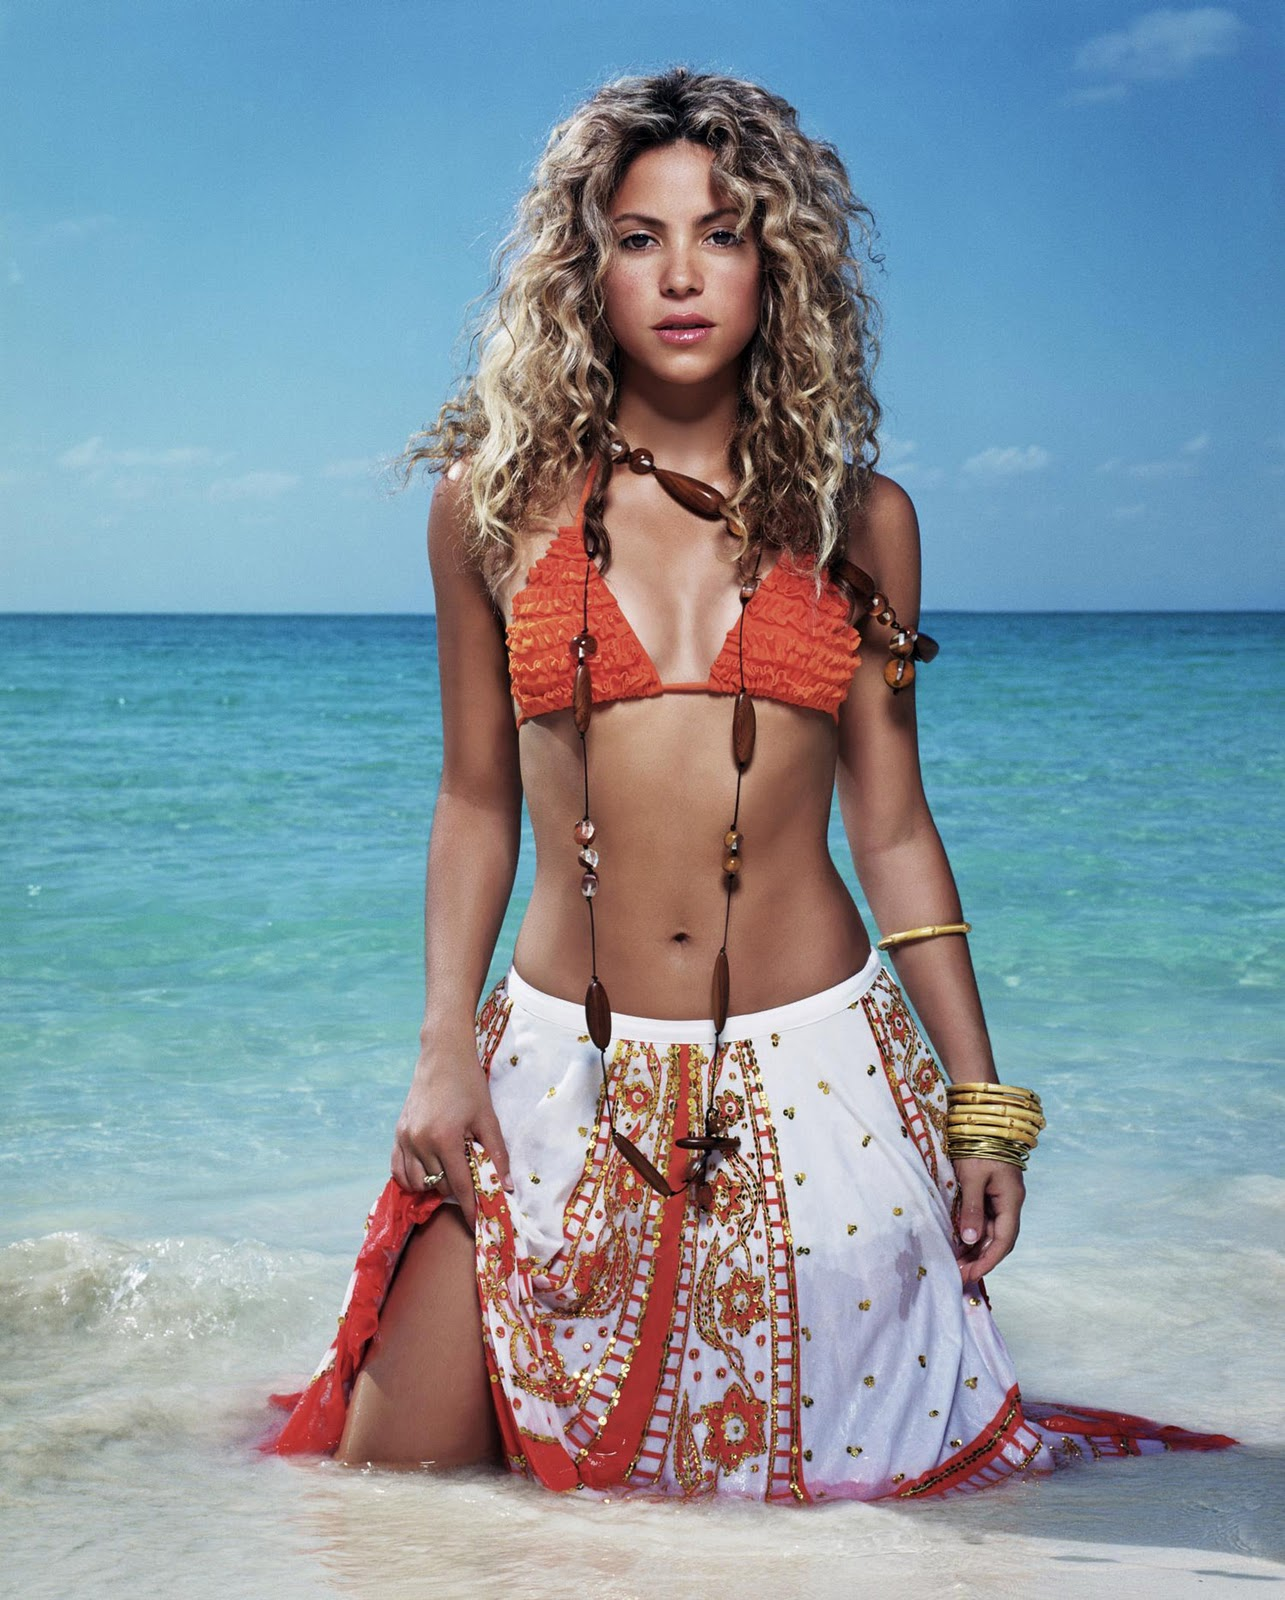 Shakira hot bikini agree